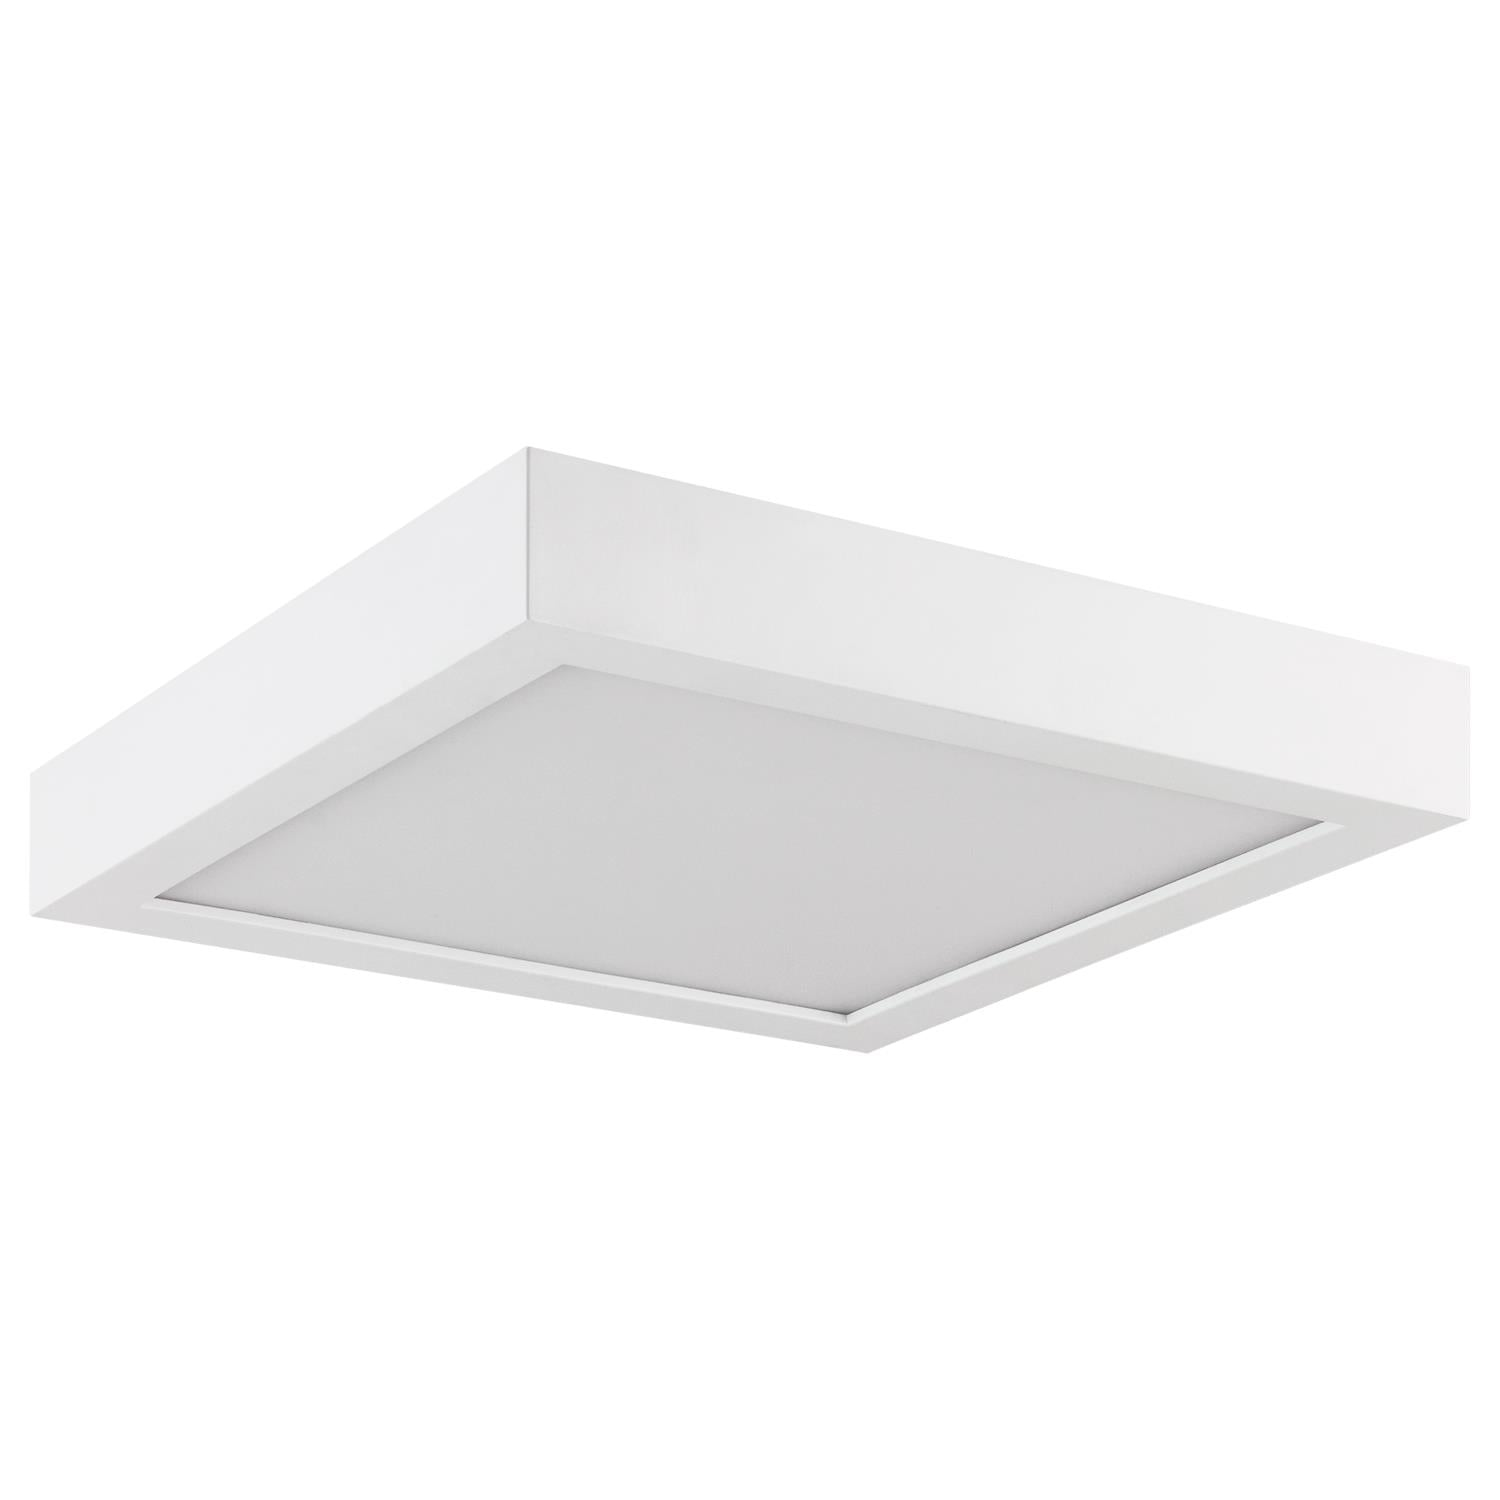 SUNLITE 14W 7in. Square LED Surface Mount Downlight 3000K Warm White